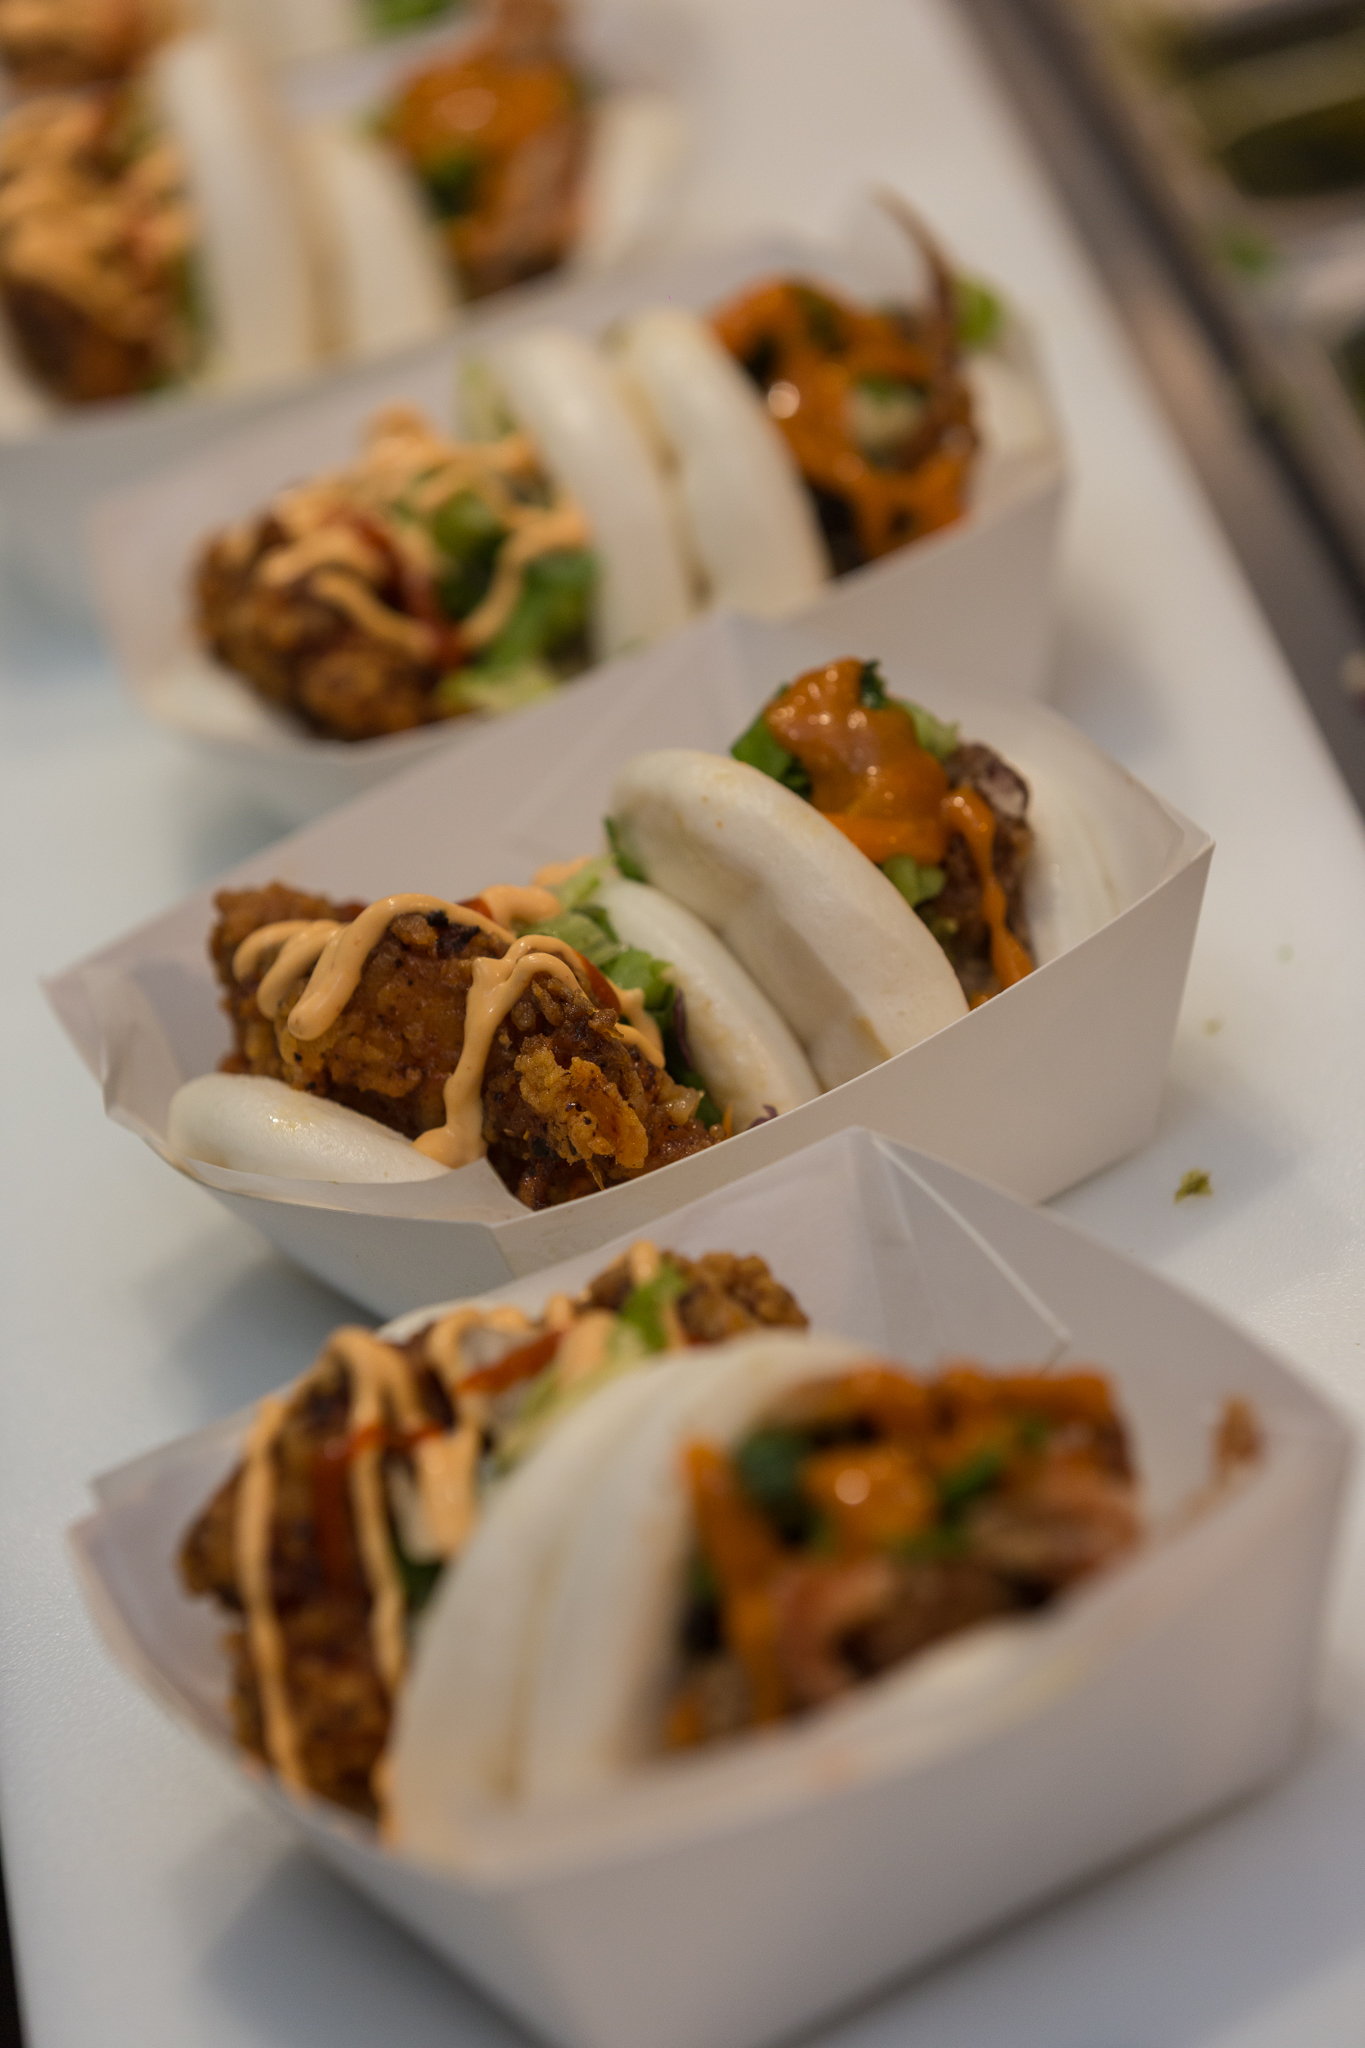 dji port boat-18 Cloud Thief - Menu photo.19 (high res credit Tom Delaney).JPG